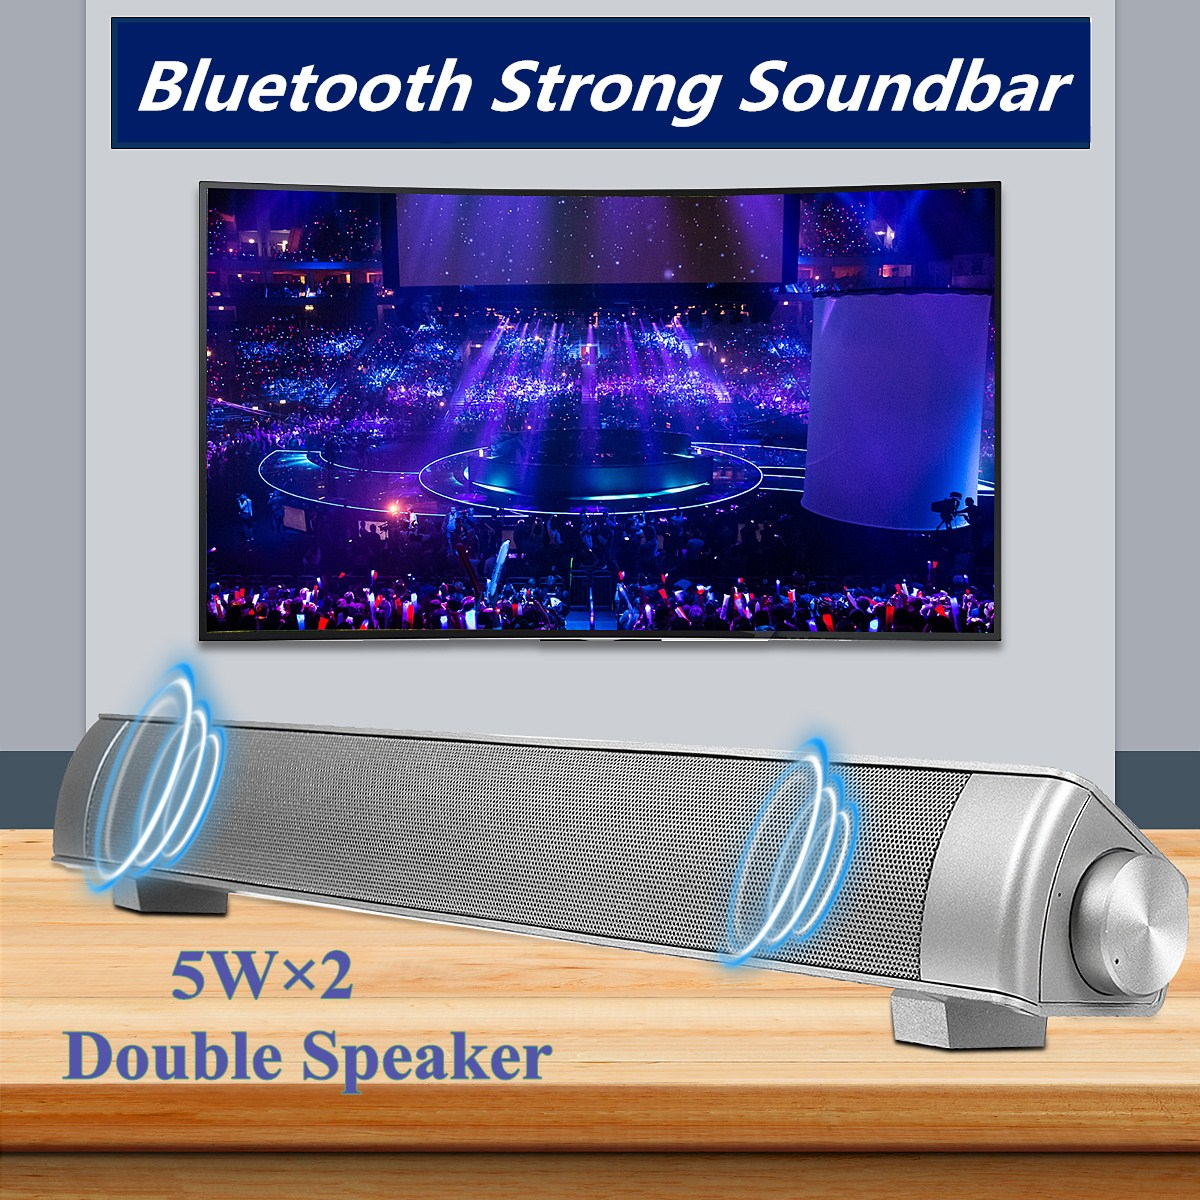 Powerful 360° Sound Bar Wireless TV Soundbar Stereo bluetooth Hifi Home Theater Speaker Box MP3 For TPC Laptop Tablet Smartphone Upgraded TF AUX